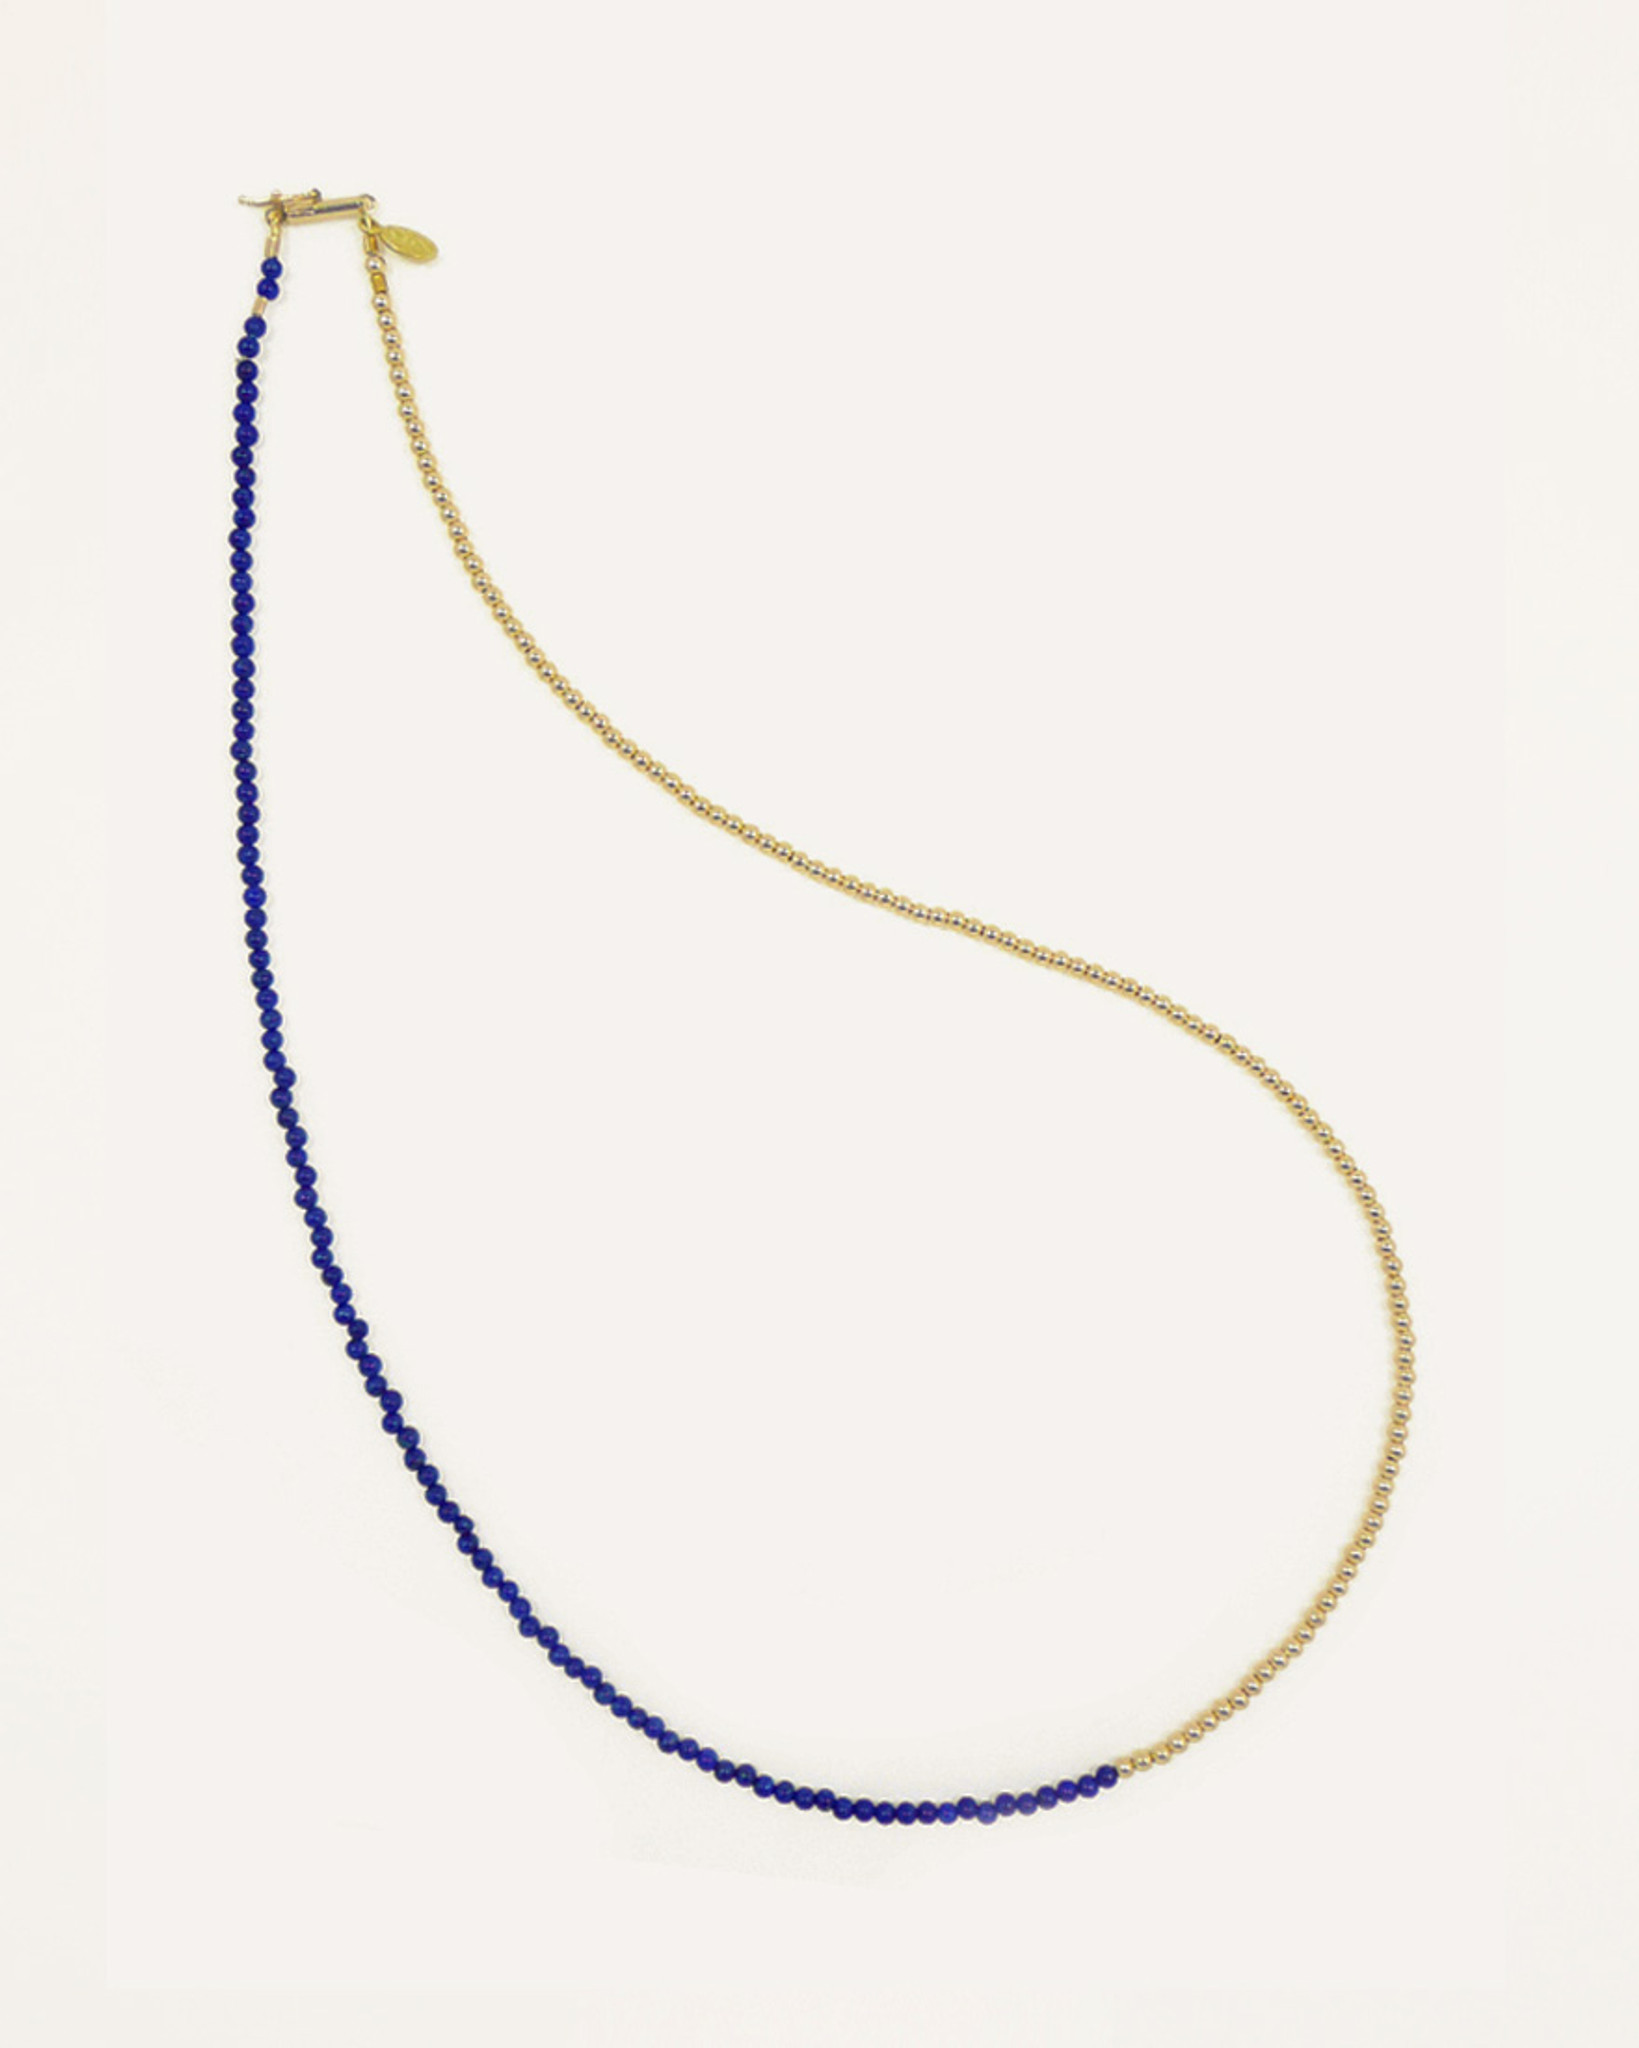 cf89abd851b1d7 Lapis Lazuli and Gold Bead Delicate Friendship Bracelet Necklace by Fine  Jewelry Designer Nektar De Stagni ...